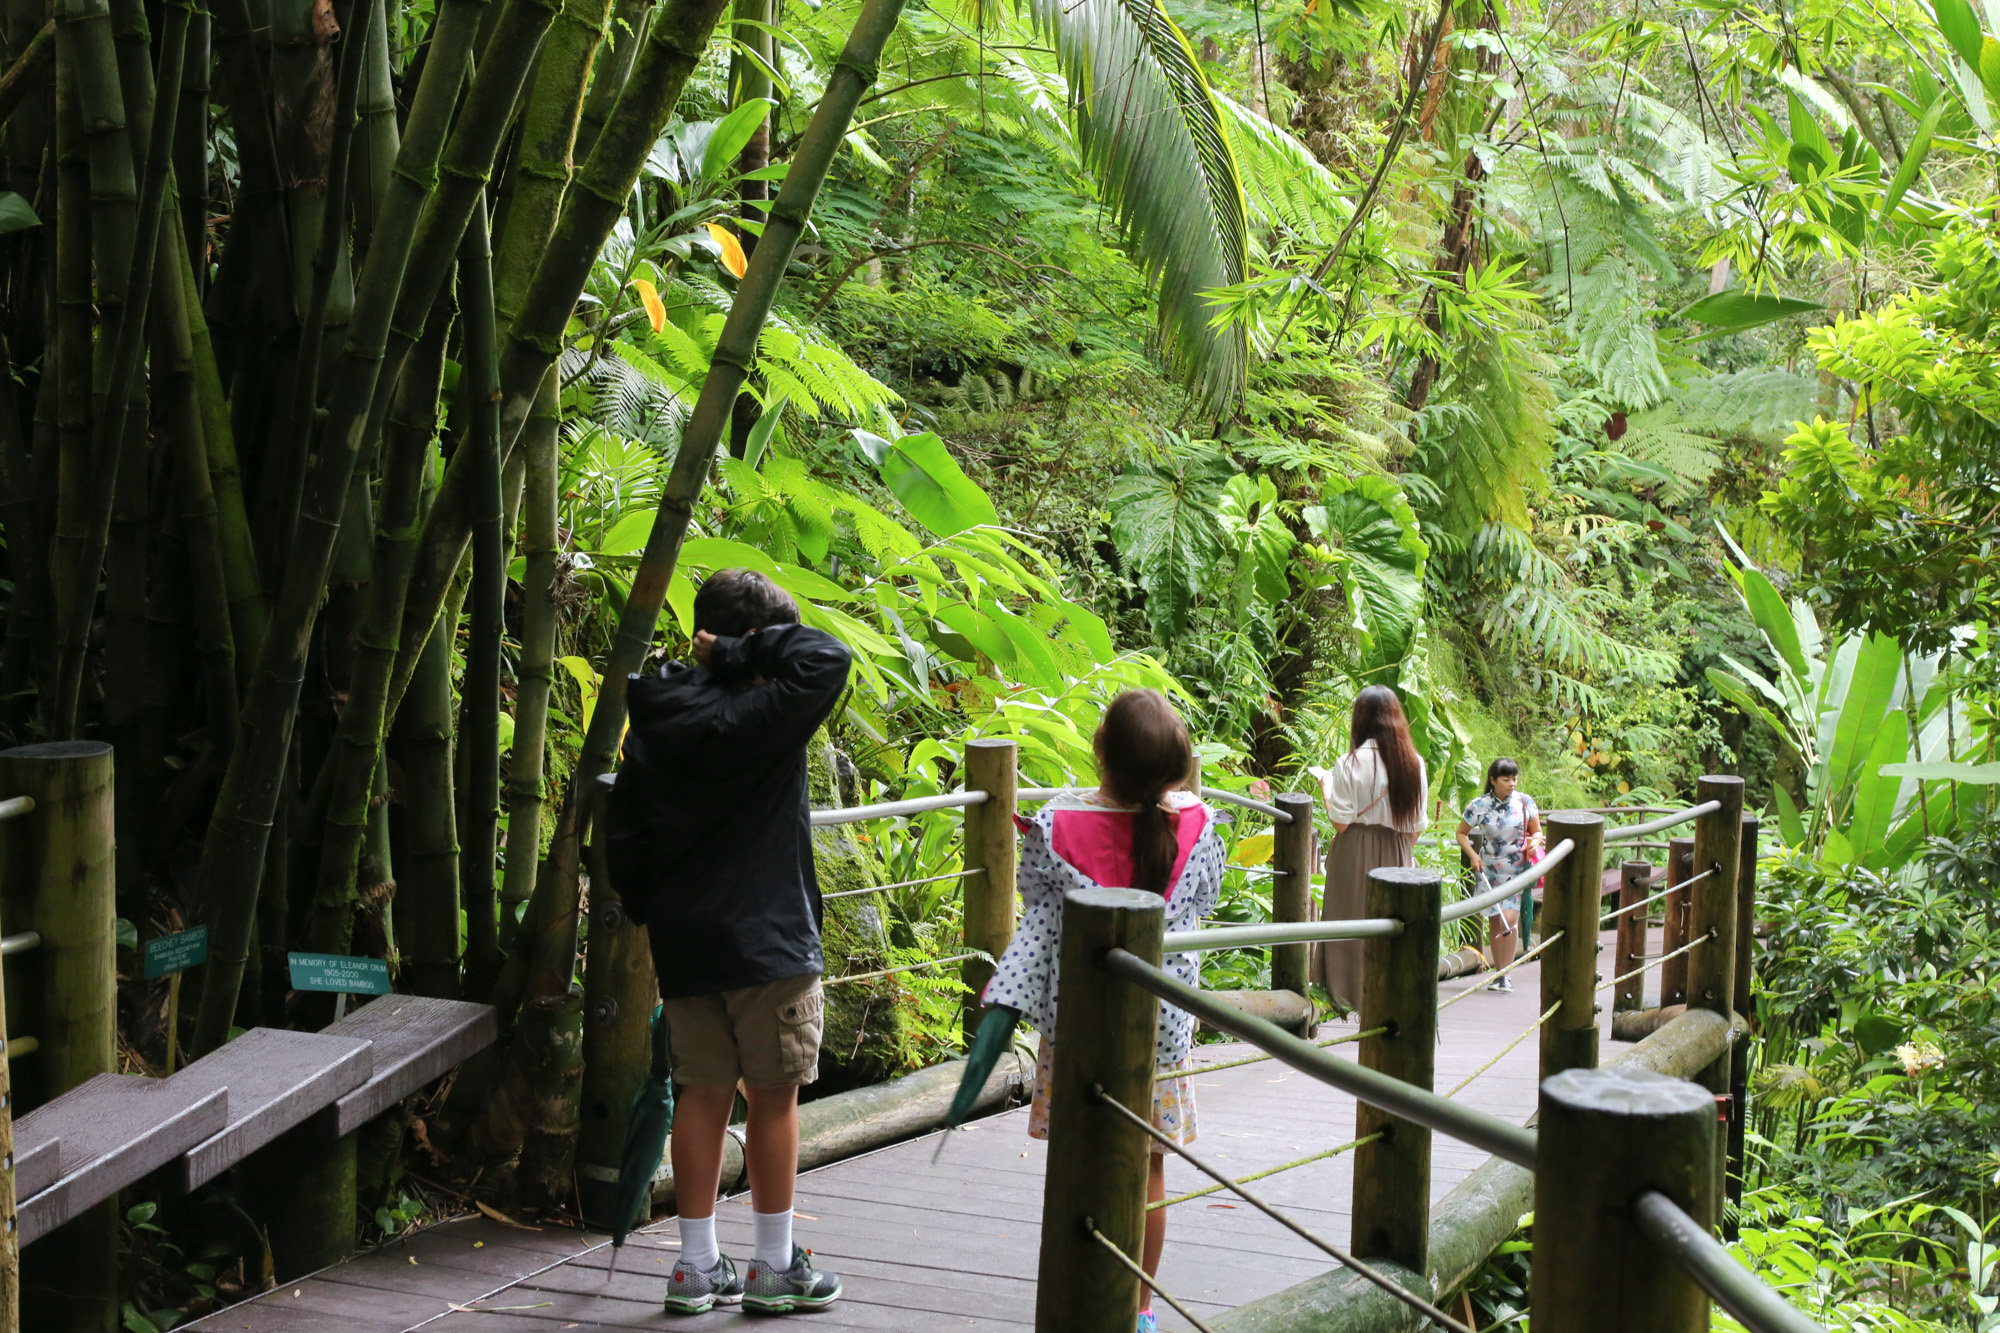 original_caughey-melissa-hawaii-garden-kids-boardwalk-entry